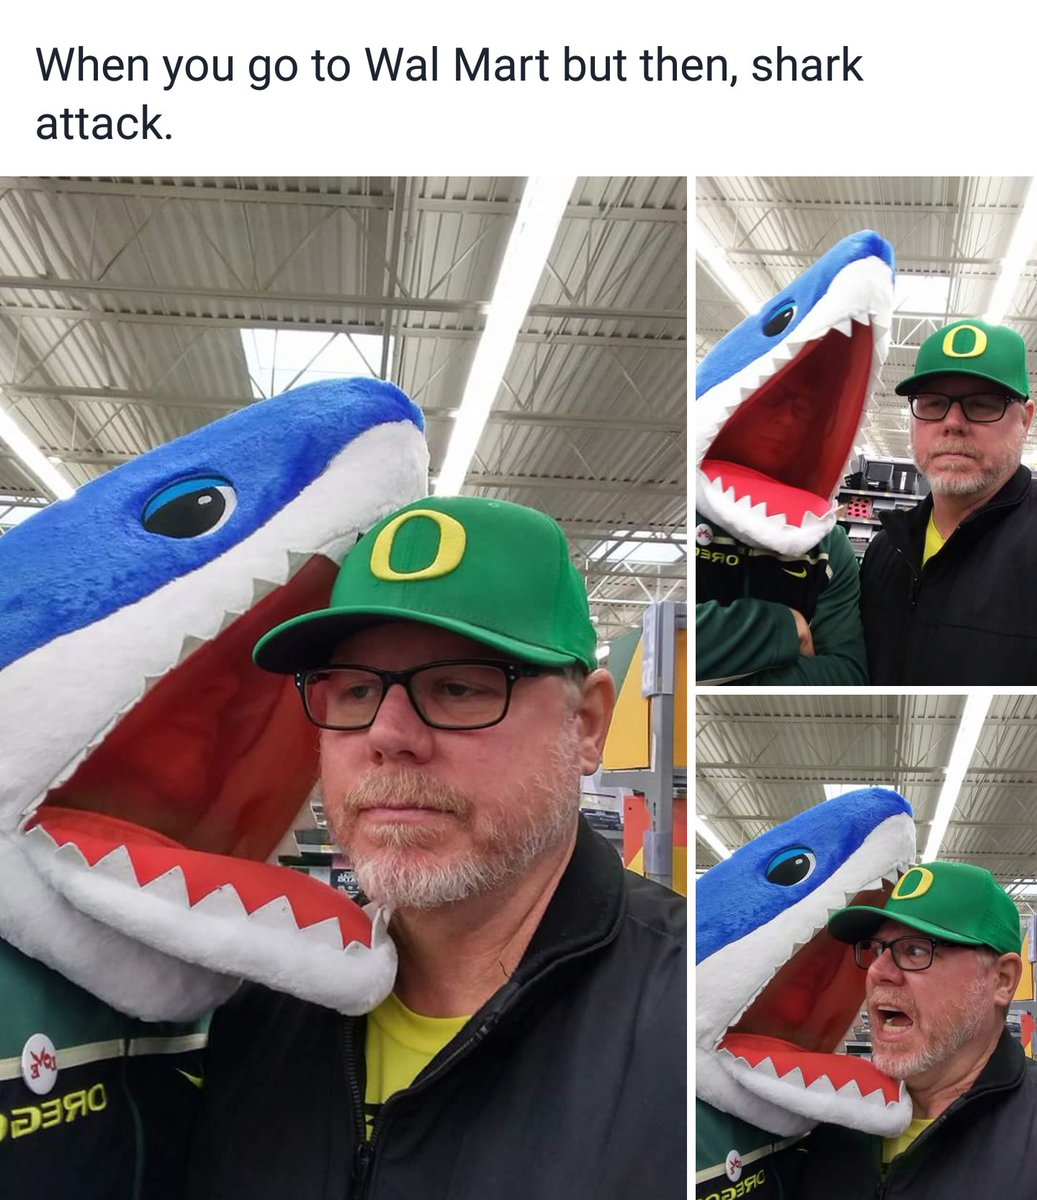 When you go to #WALMART but then, shark attack. <br>http://pic.twitter.com/6VBj8VKibM